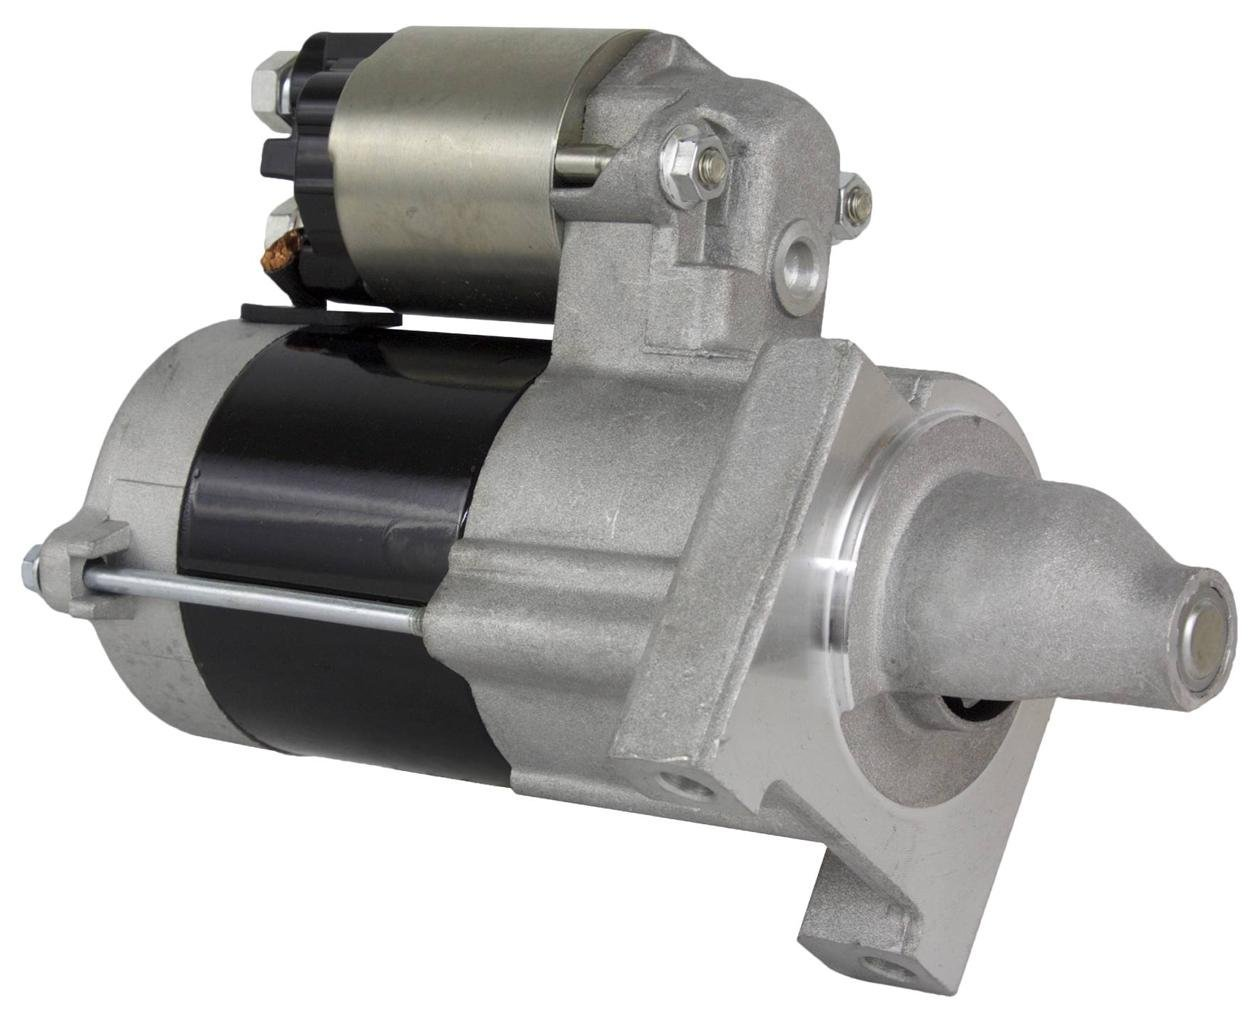 Get Quotations · NEW STARTER MOTOR FITS JOHN DEERE GATOR TX UTV 13HP KAWASAKI  ENGINE 21163-7020